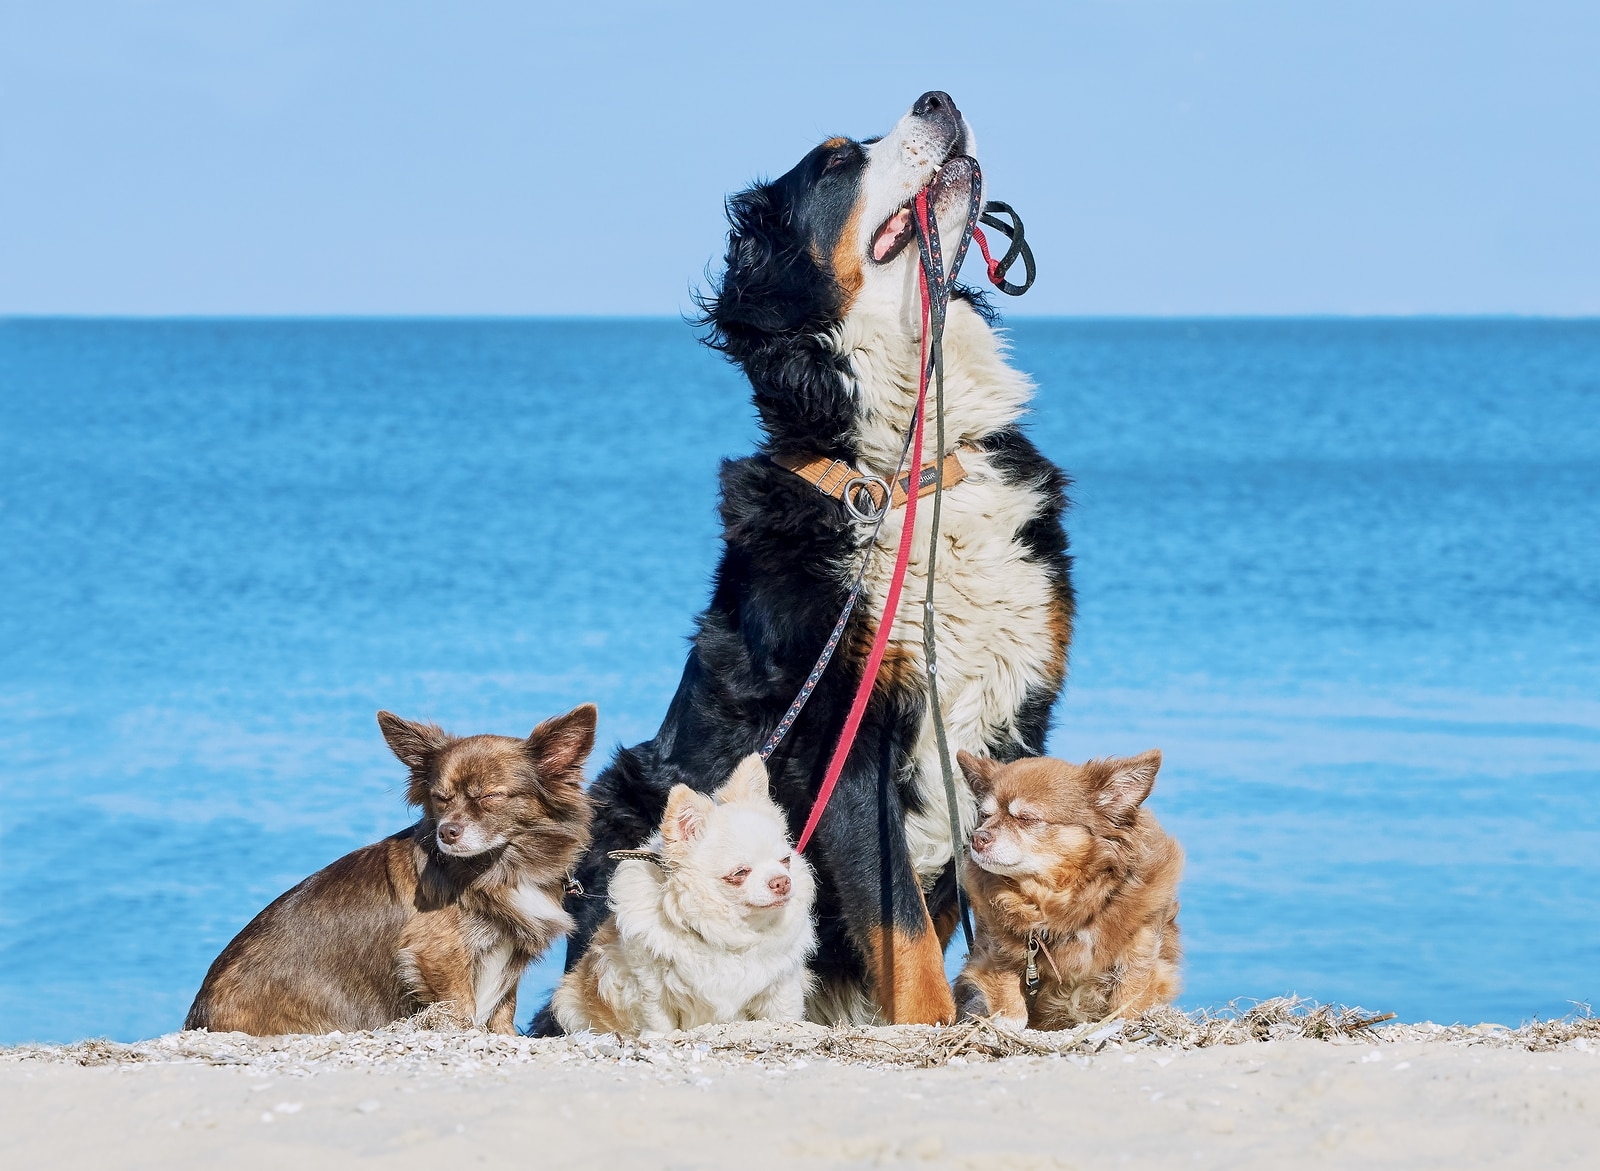 Bernese Mountain dog with the leashes of three Chihuahuas in his mouth on the seashore